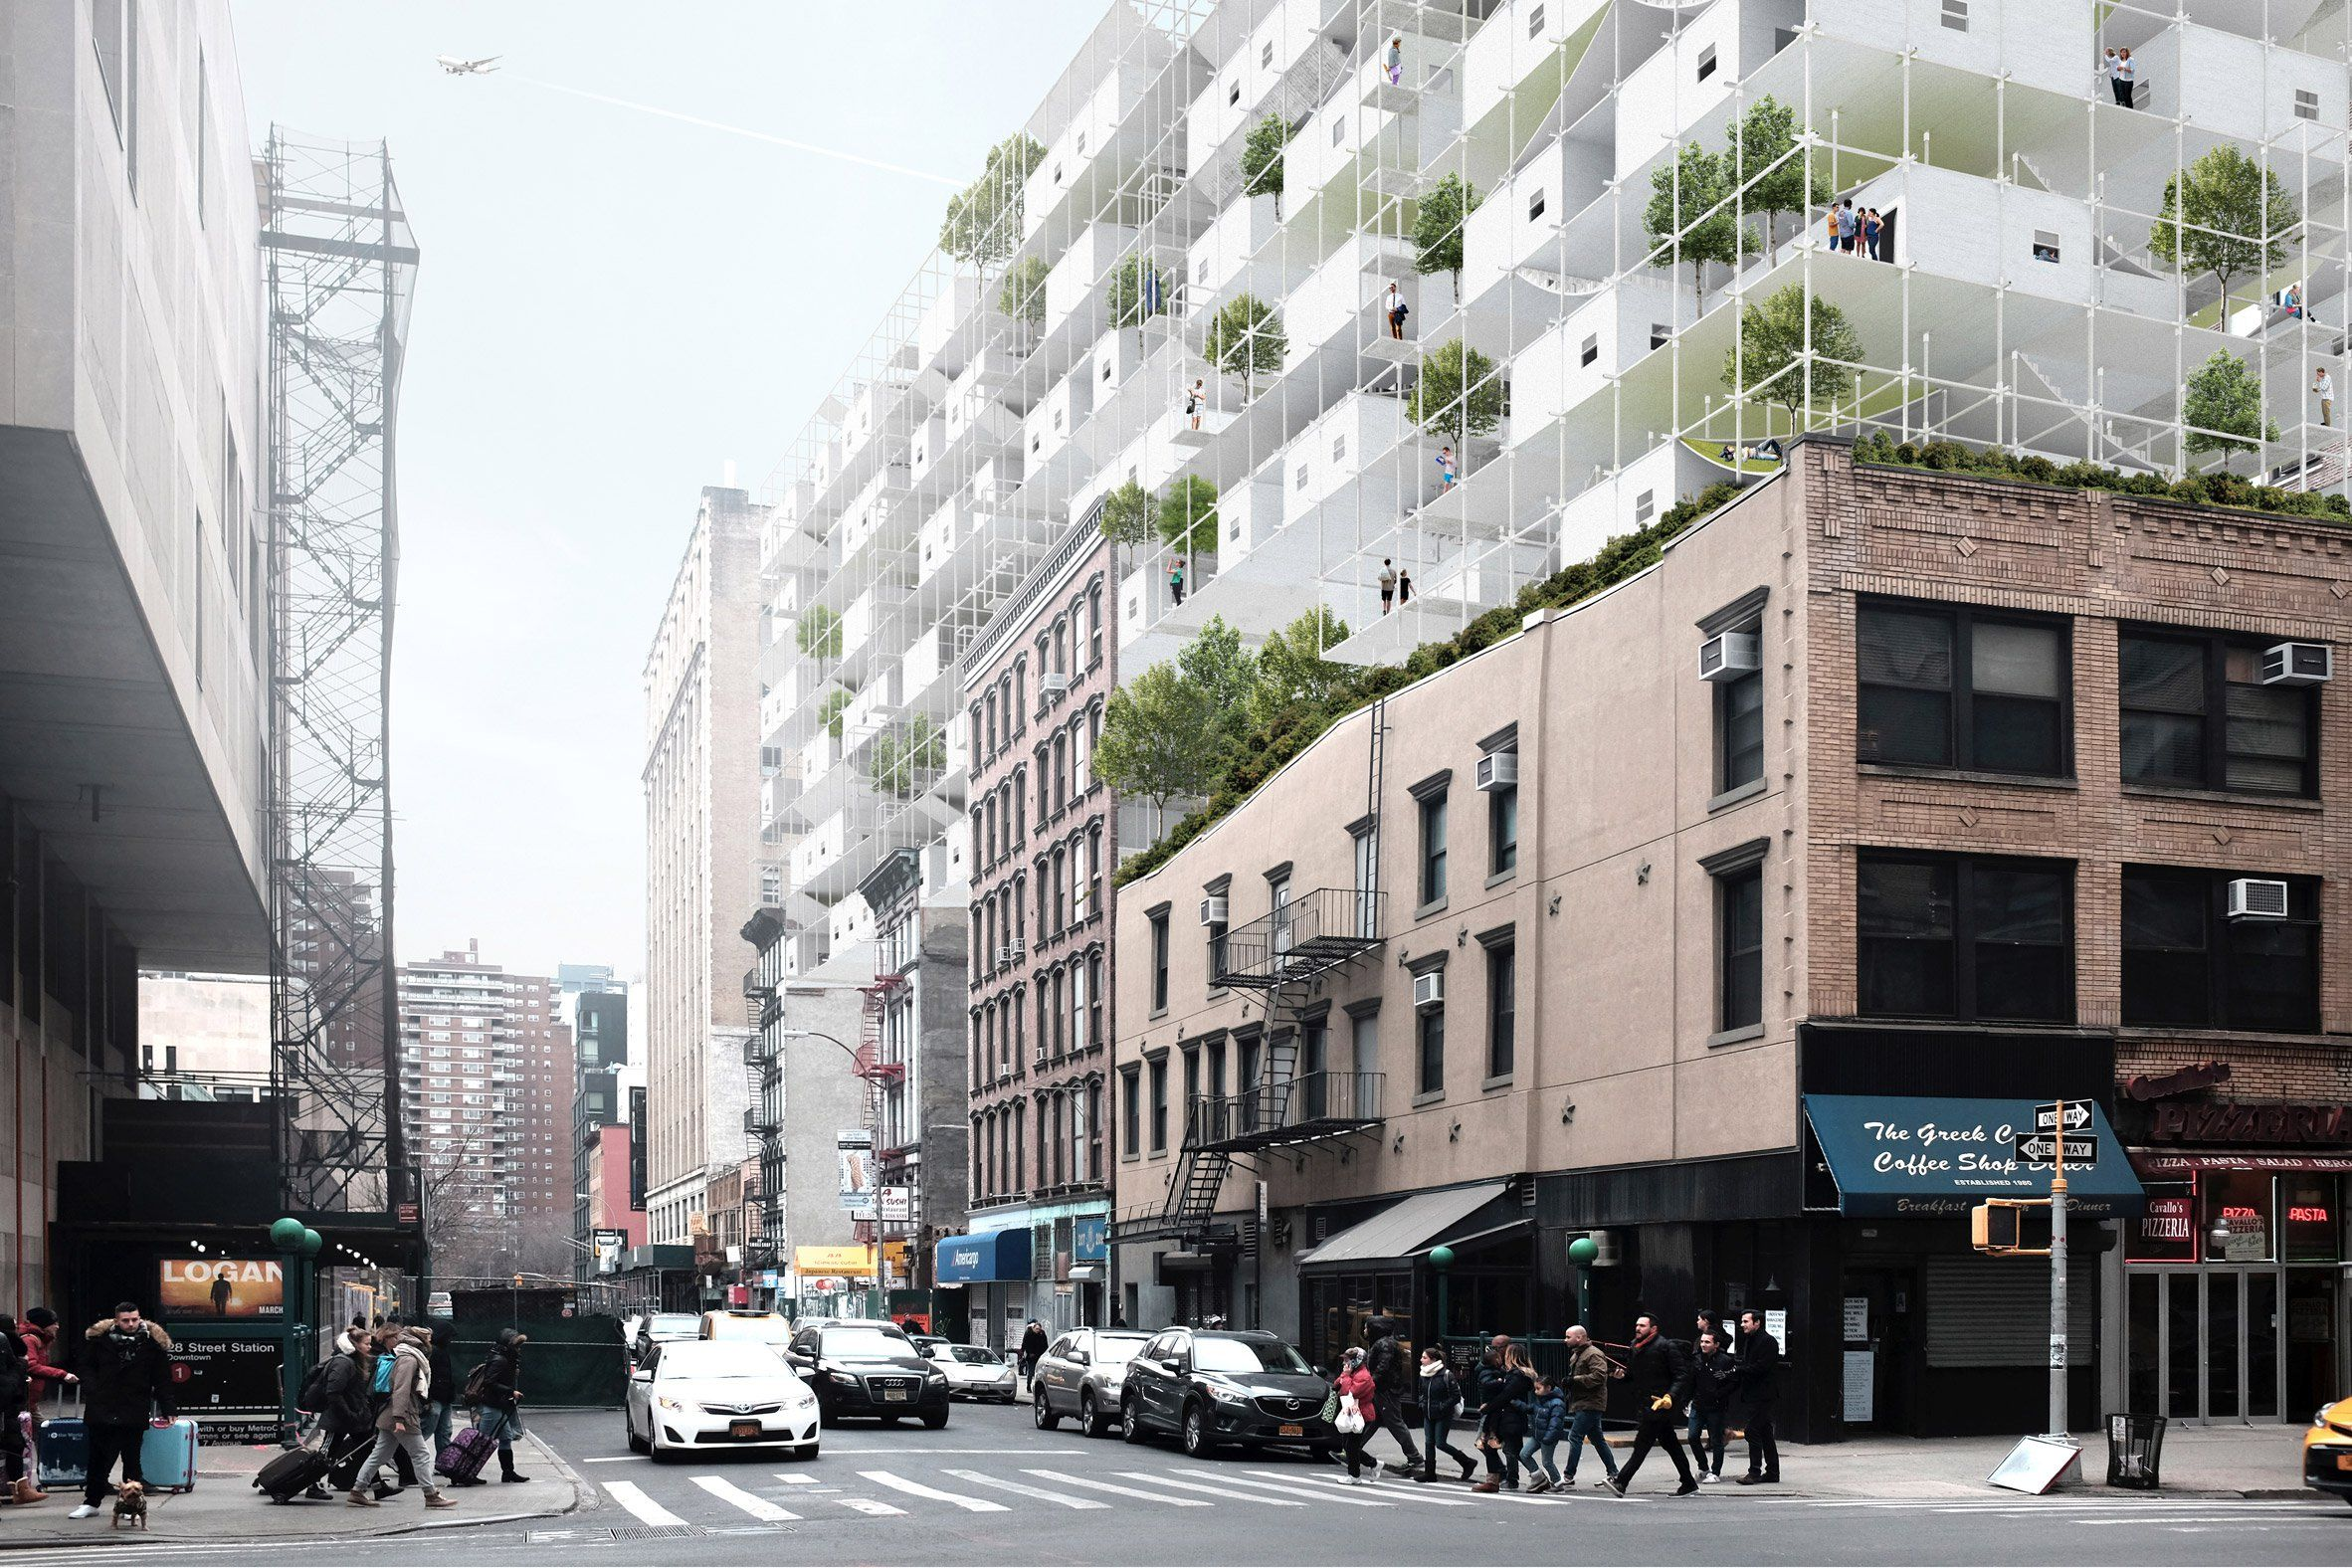 Modular Affordable Housing Envisioned For Abandoned New York Airspace Affordable Housing Public Architecture Cool Landscapes